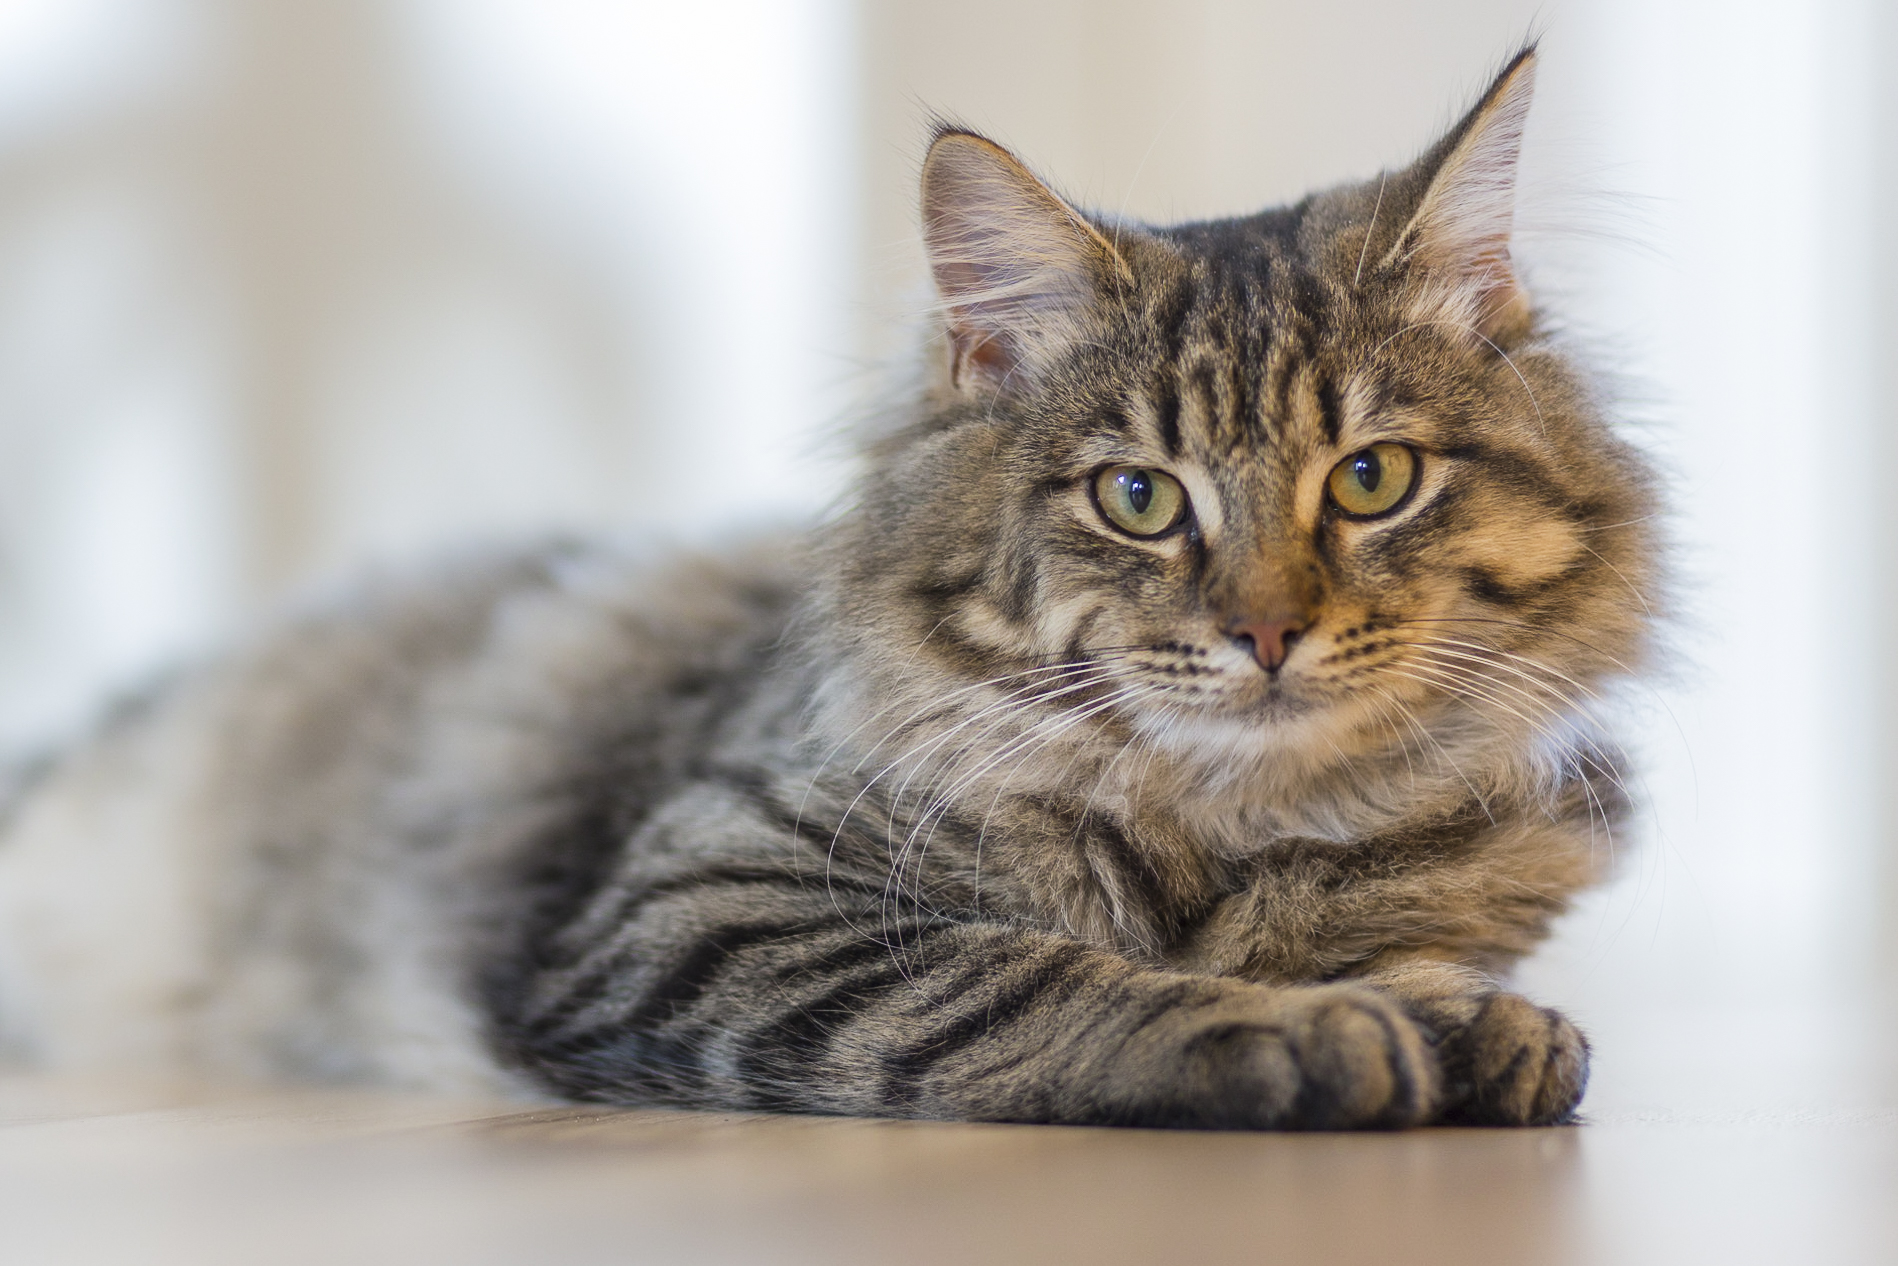 40 Interesting And Weird Facts About Cats - Tons Of Facts